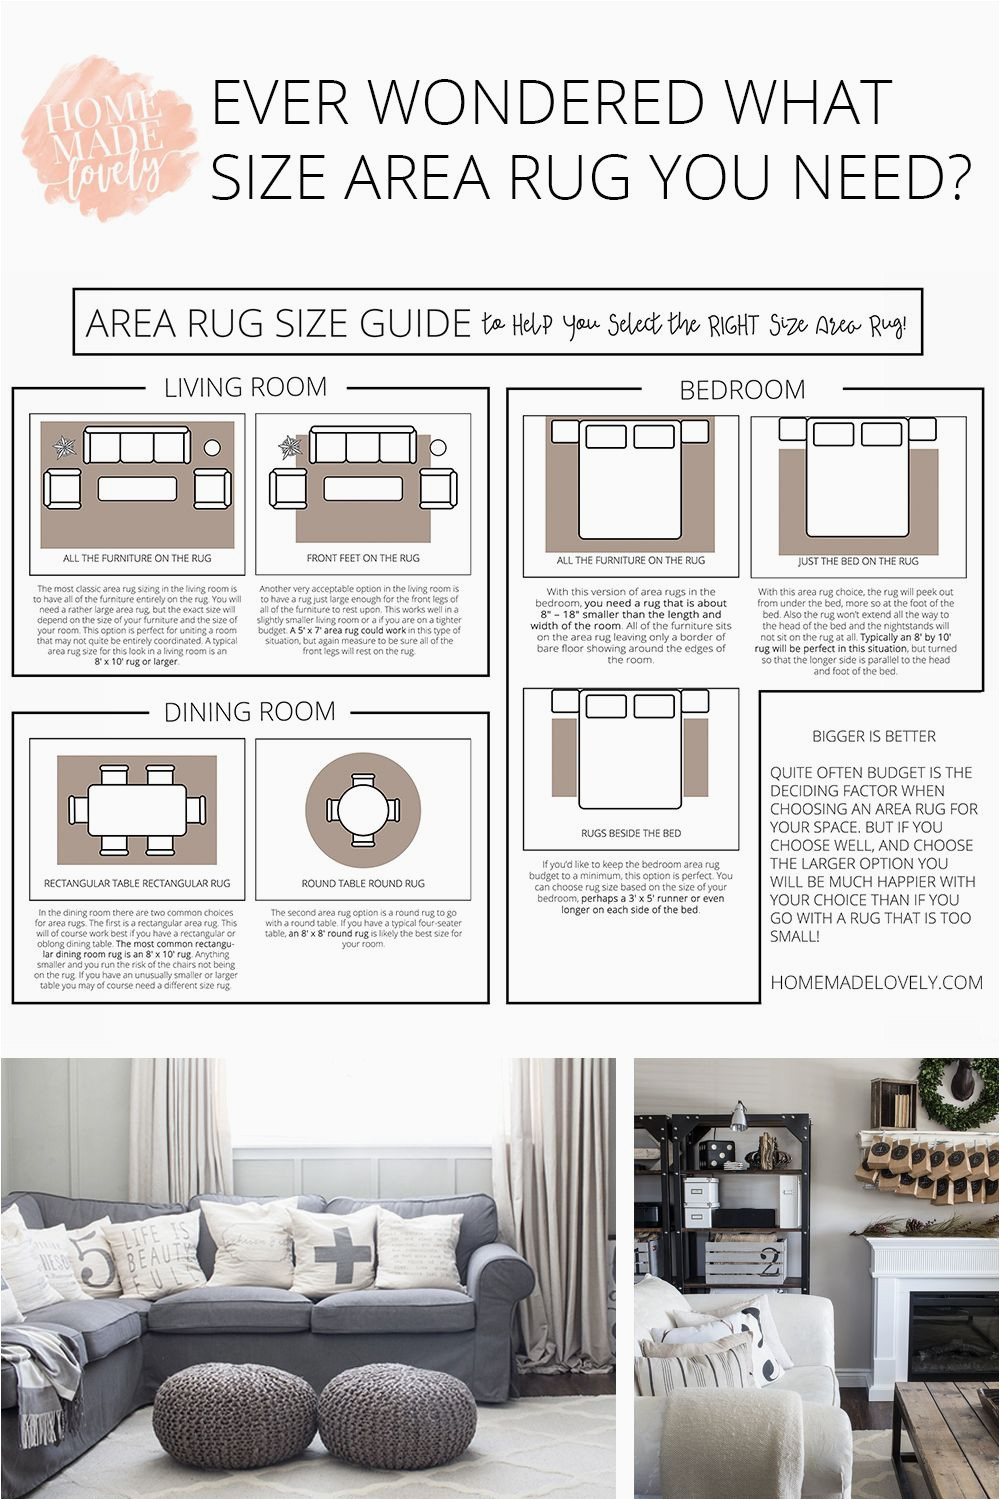 Correct area Rug Size for Living Room area Rug Size Guide to Help You Select the Right Size area